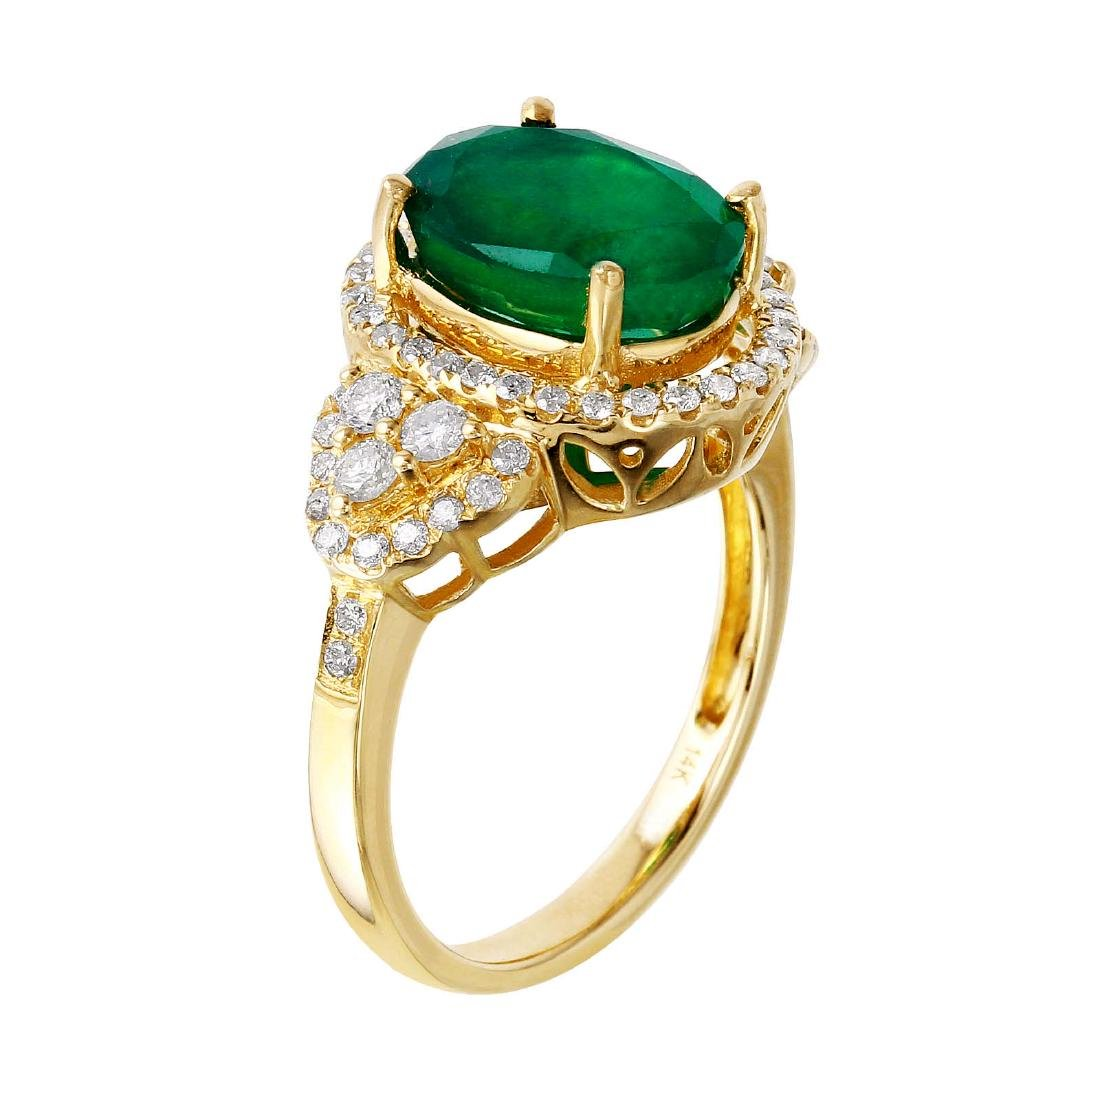 14KT Yellow Gold Emerald and Diamond Ring - 8